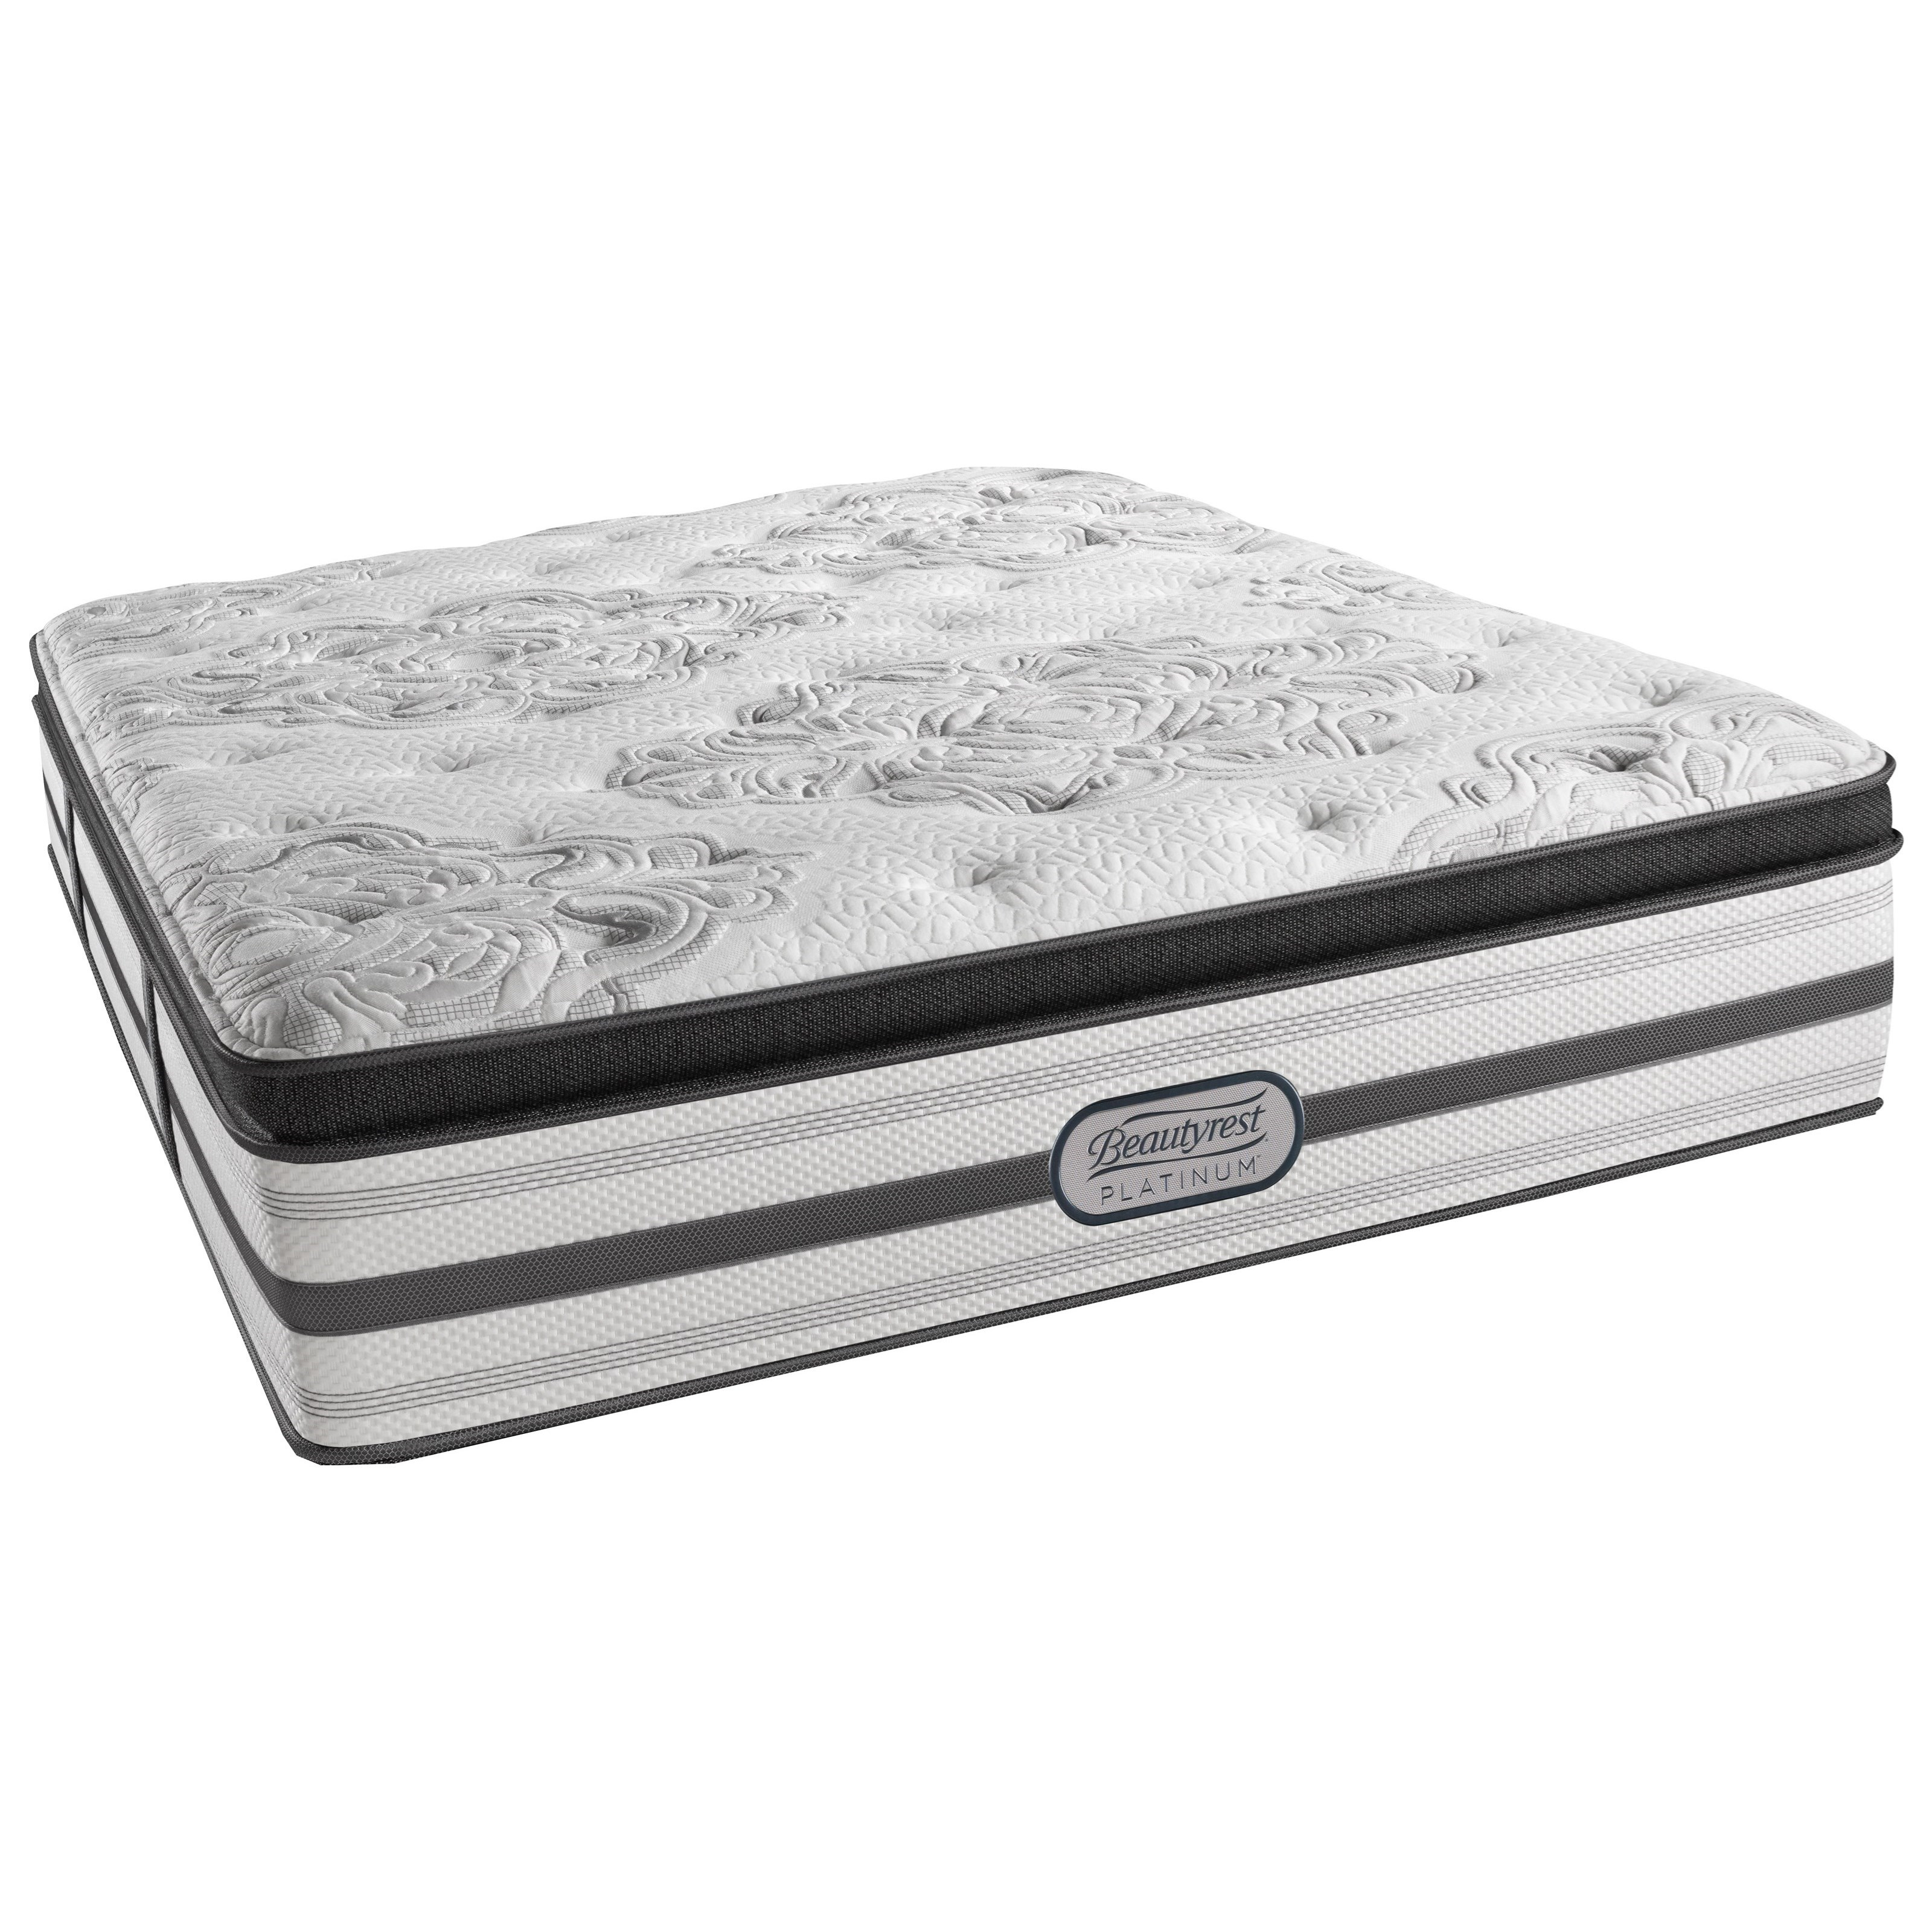 Beautyrest Platinum Gabriella Twin XL Plush Pillow Top Mattress - Item Number: LV3PLPT-TXL